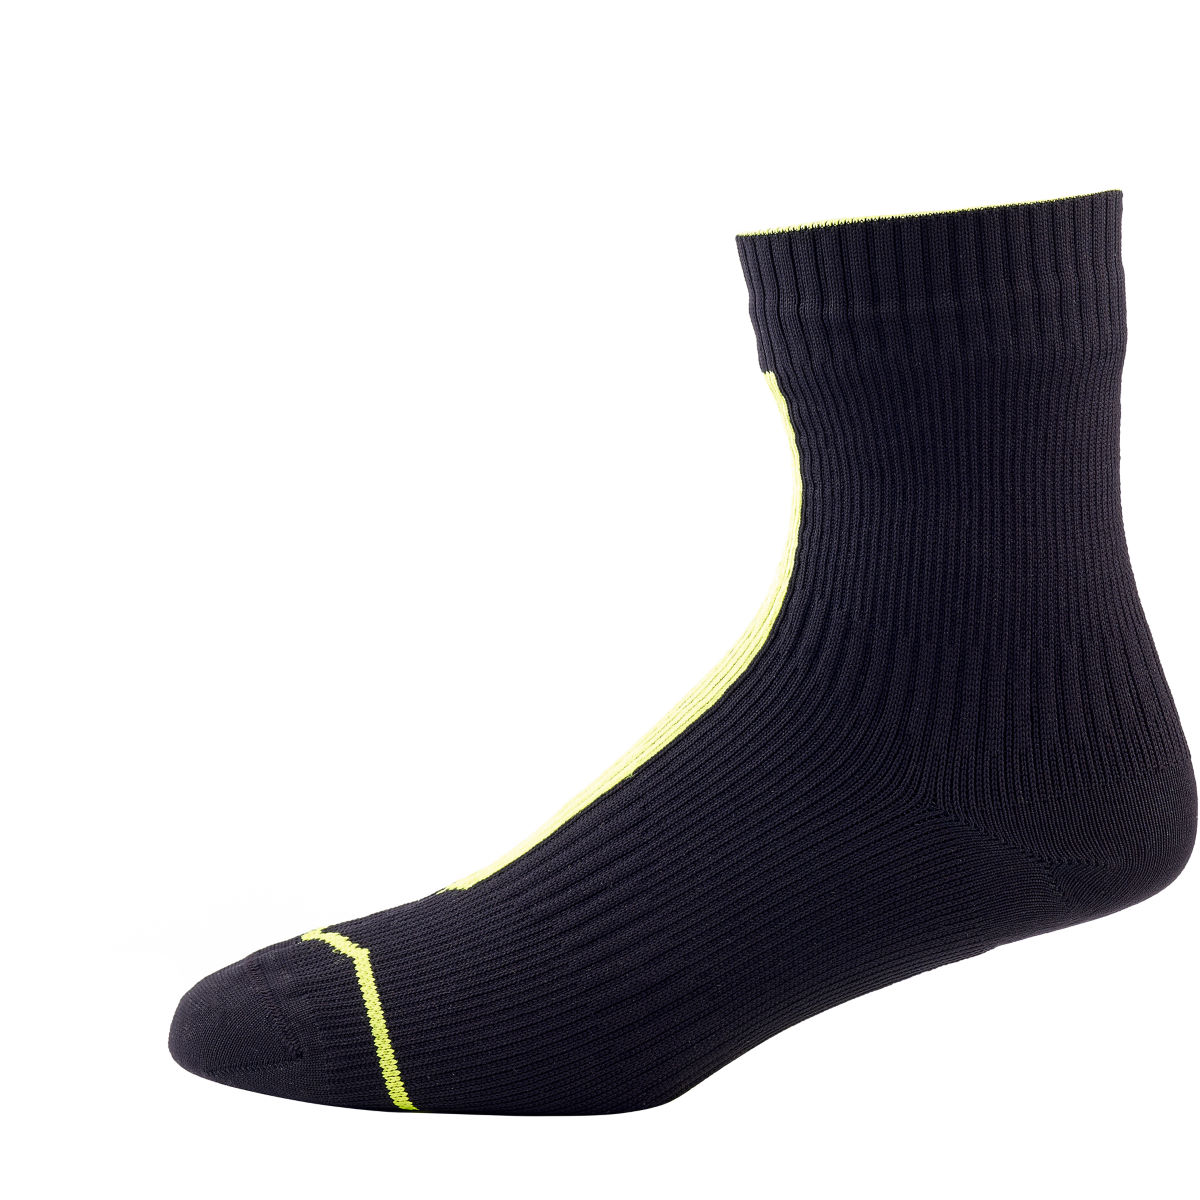 SealSkinz Road Hydrostop Thin Ankle Socks   Waterproof Socks